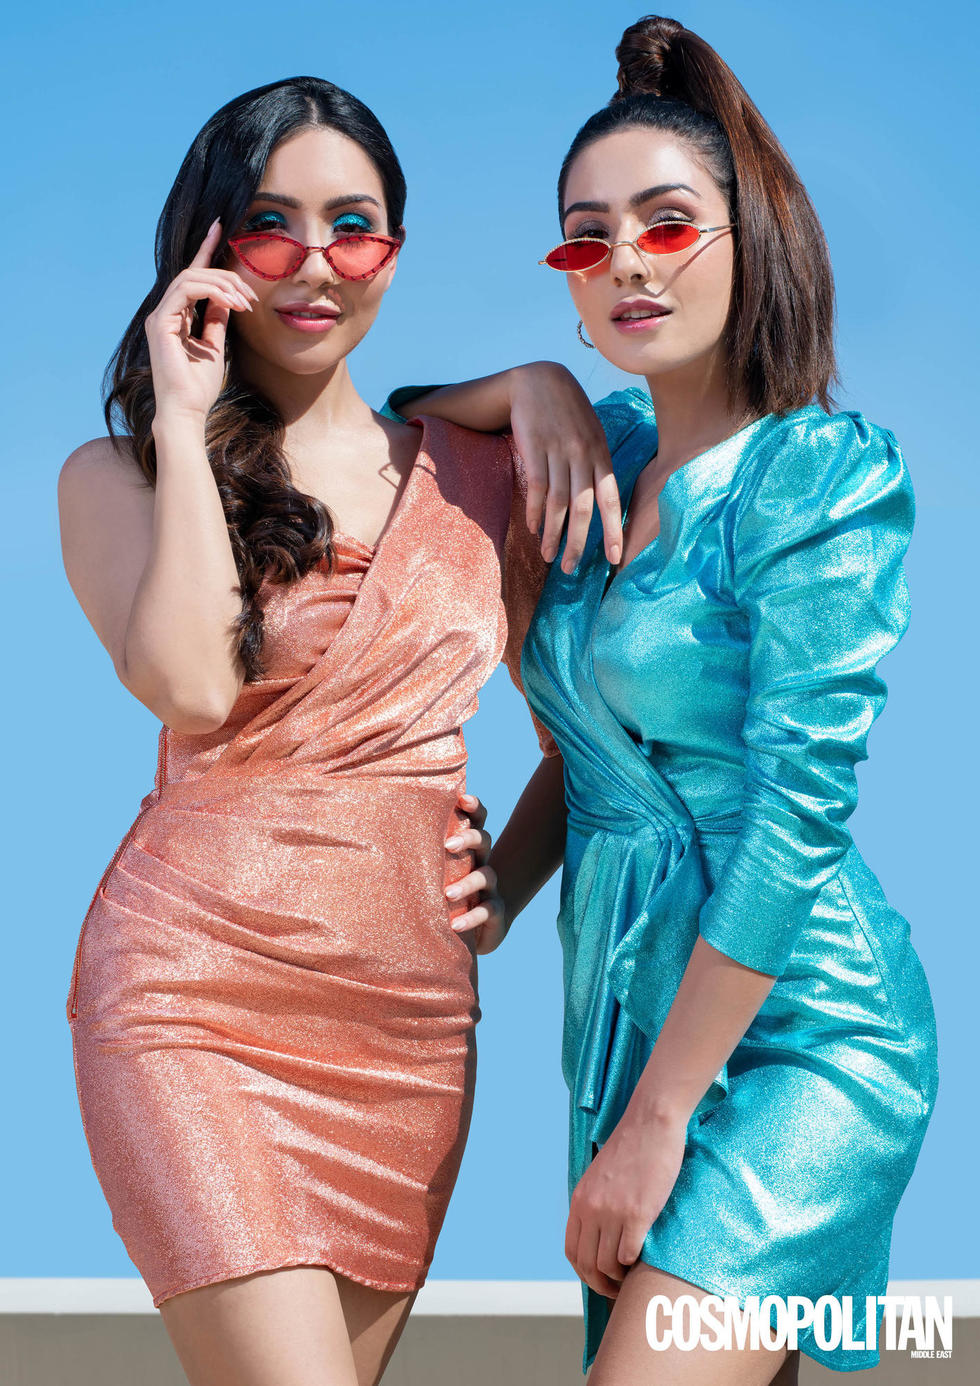 Revealed: February cover stars Rinky & Ritu Pamnani have a sisterly solidarity that's a unifying force to be reckoned with